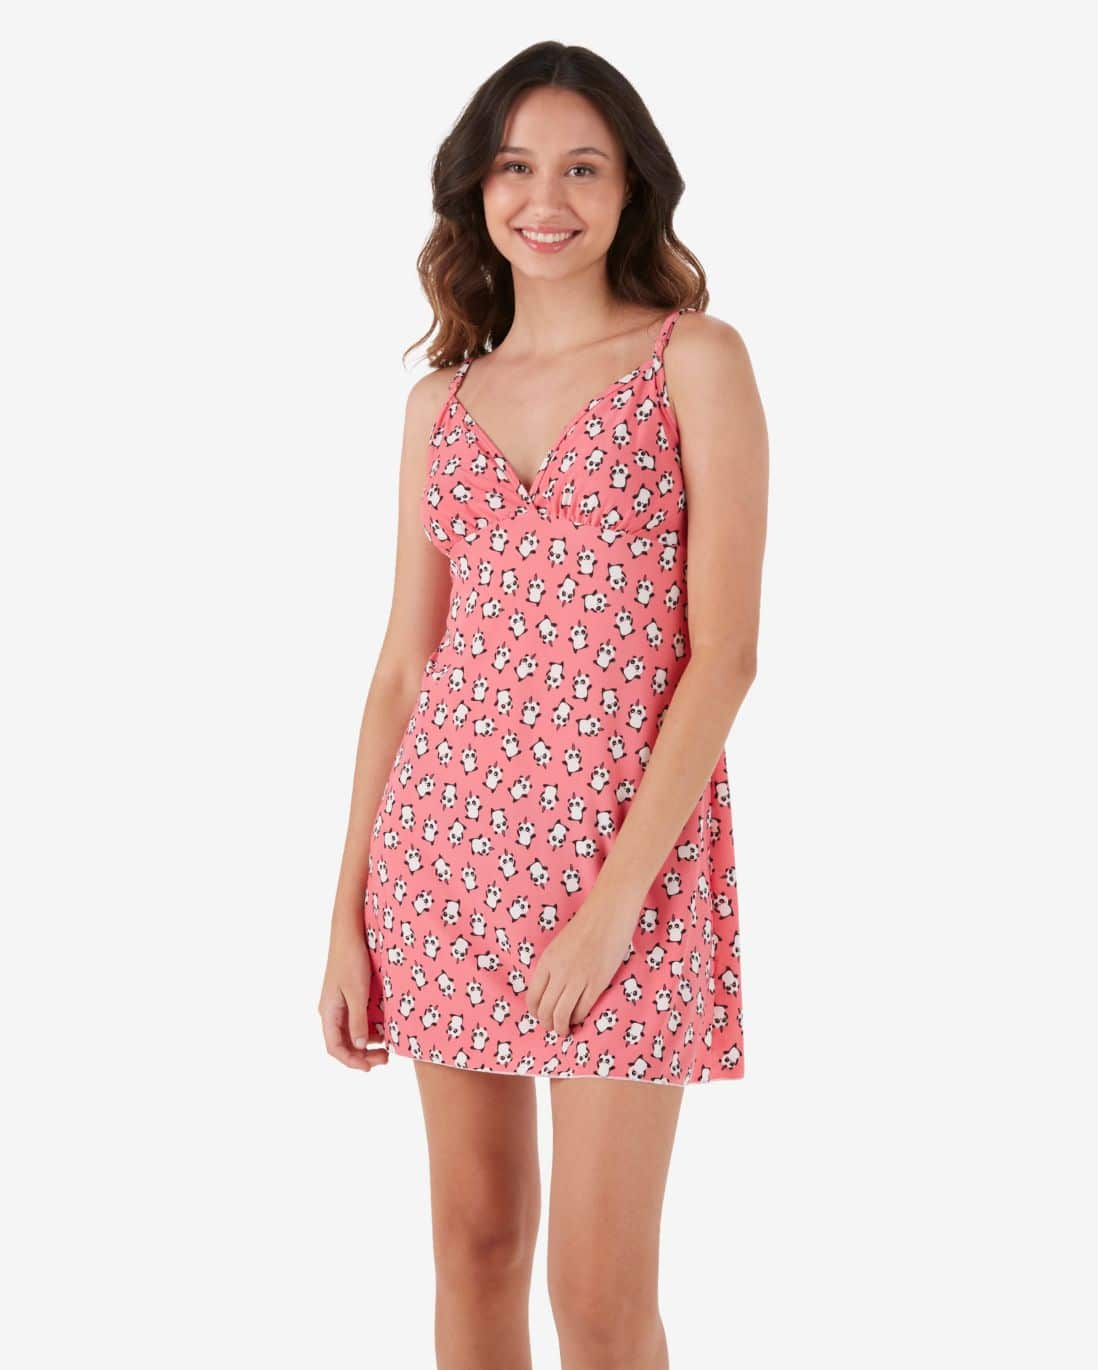 Camisola Liganete Pandacórnio Lilly - Rosa Pink